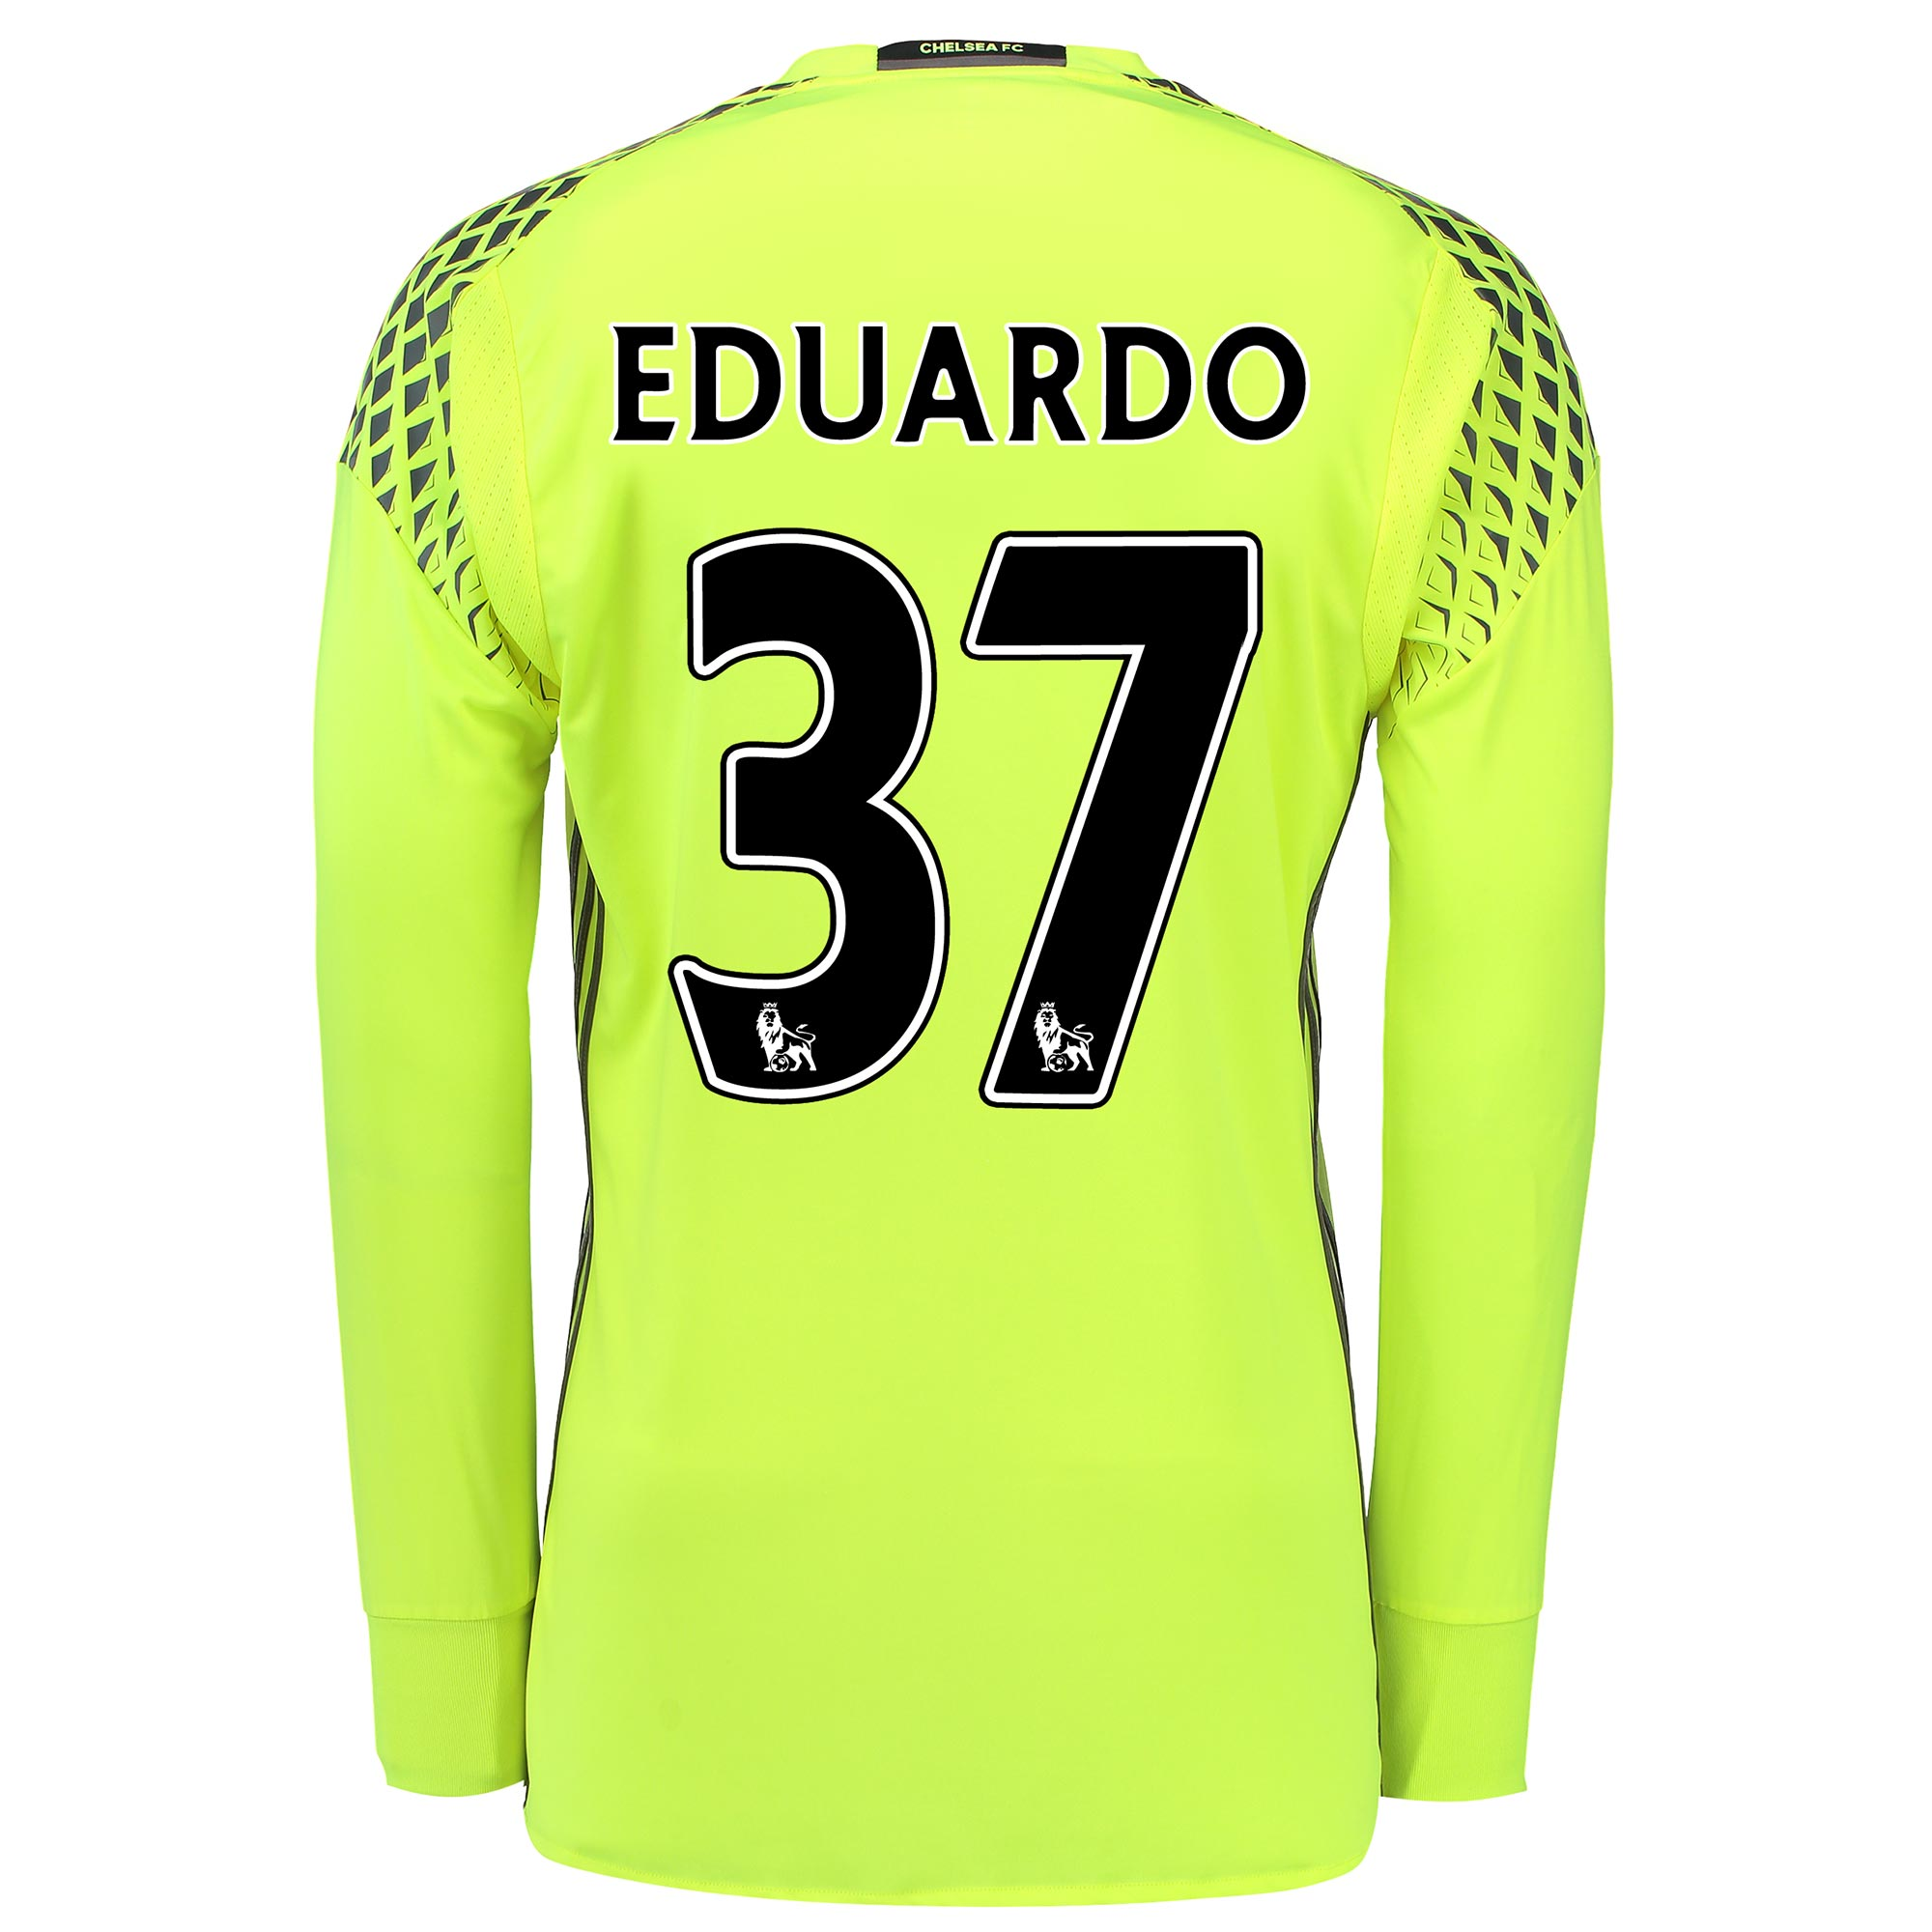 Shop Eduardo Printed Shirts